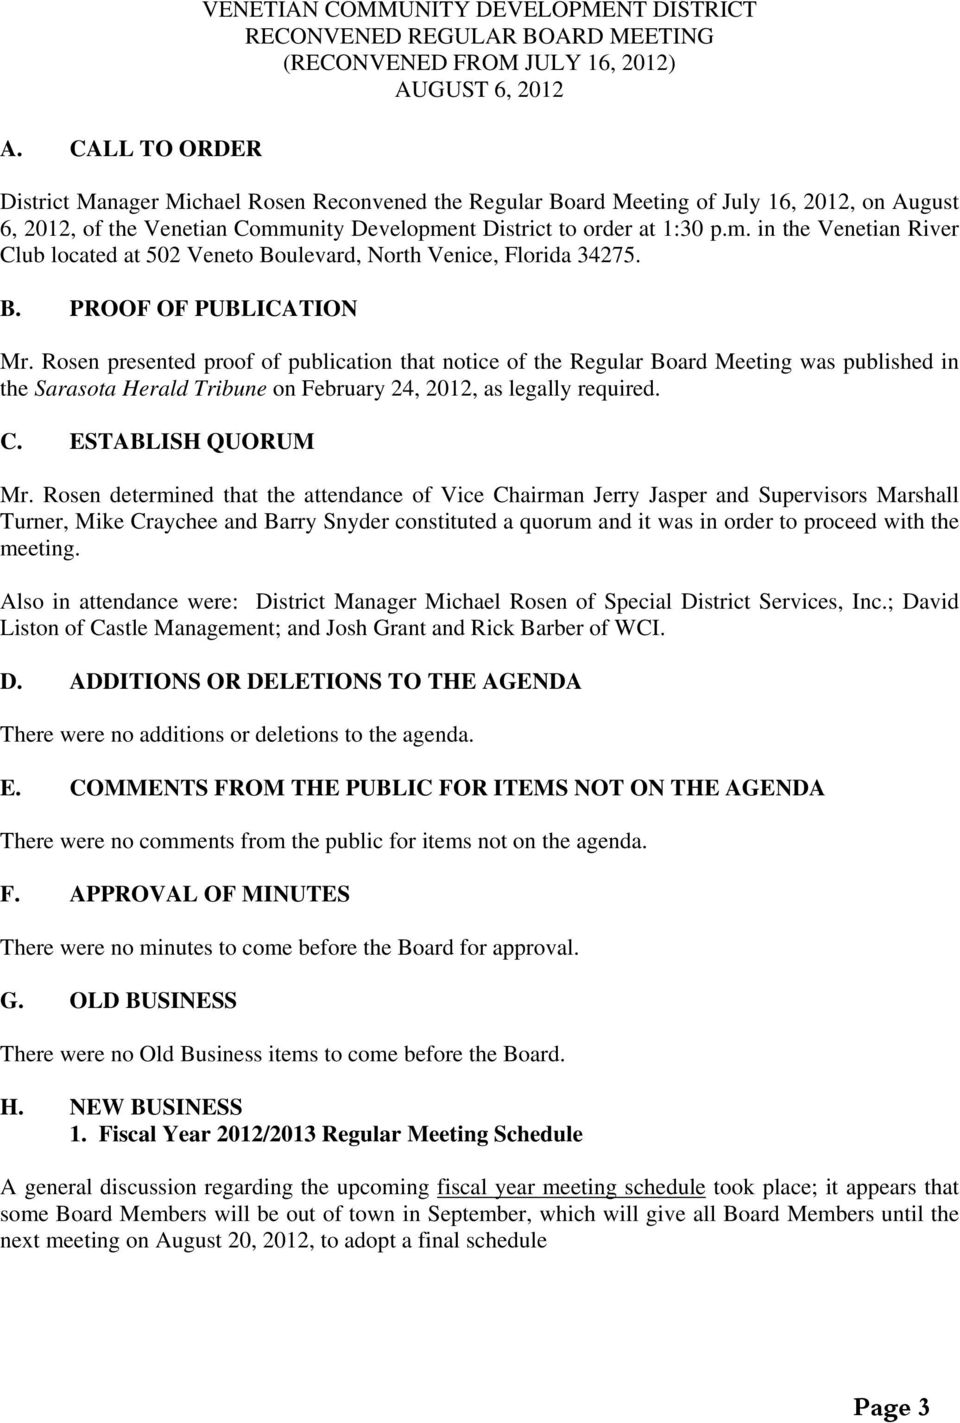 B. PROOF OF PUBLICATION Mr. Rosen presented proof of publication that notice of the Regular Board Meeting was published in the Sarasota Herald Tribune on February 24, 2012, as legally required. C.